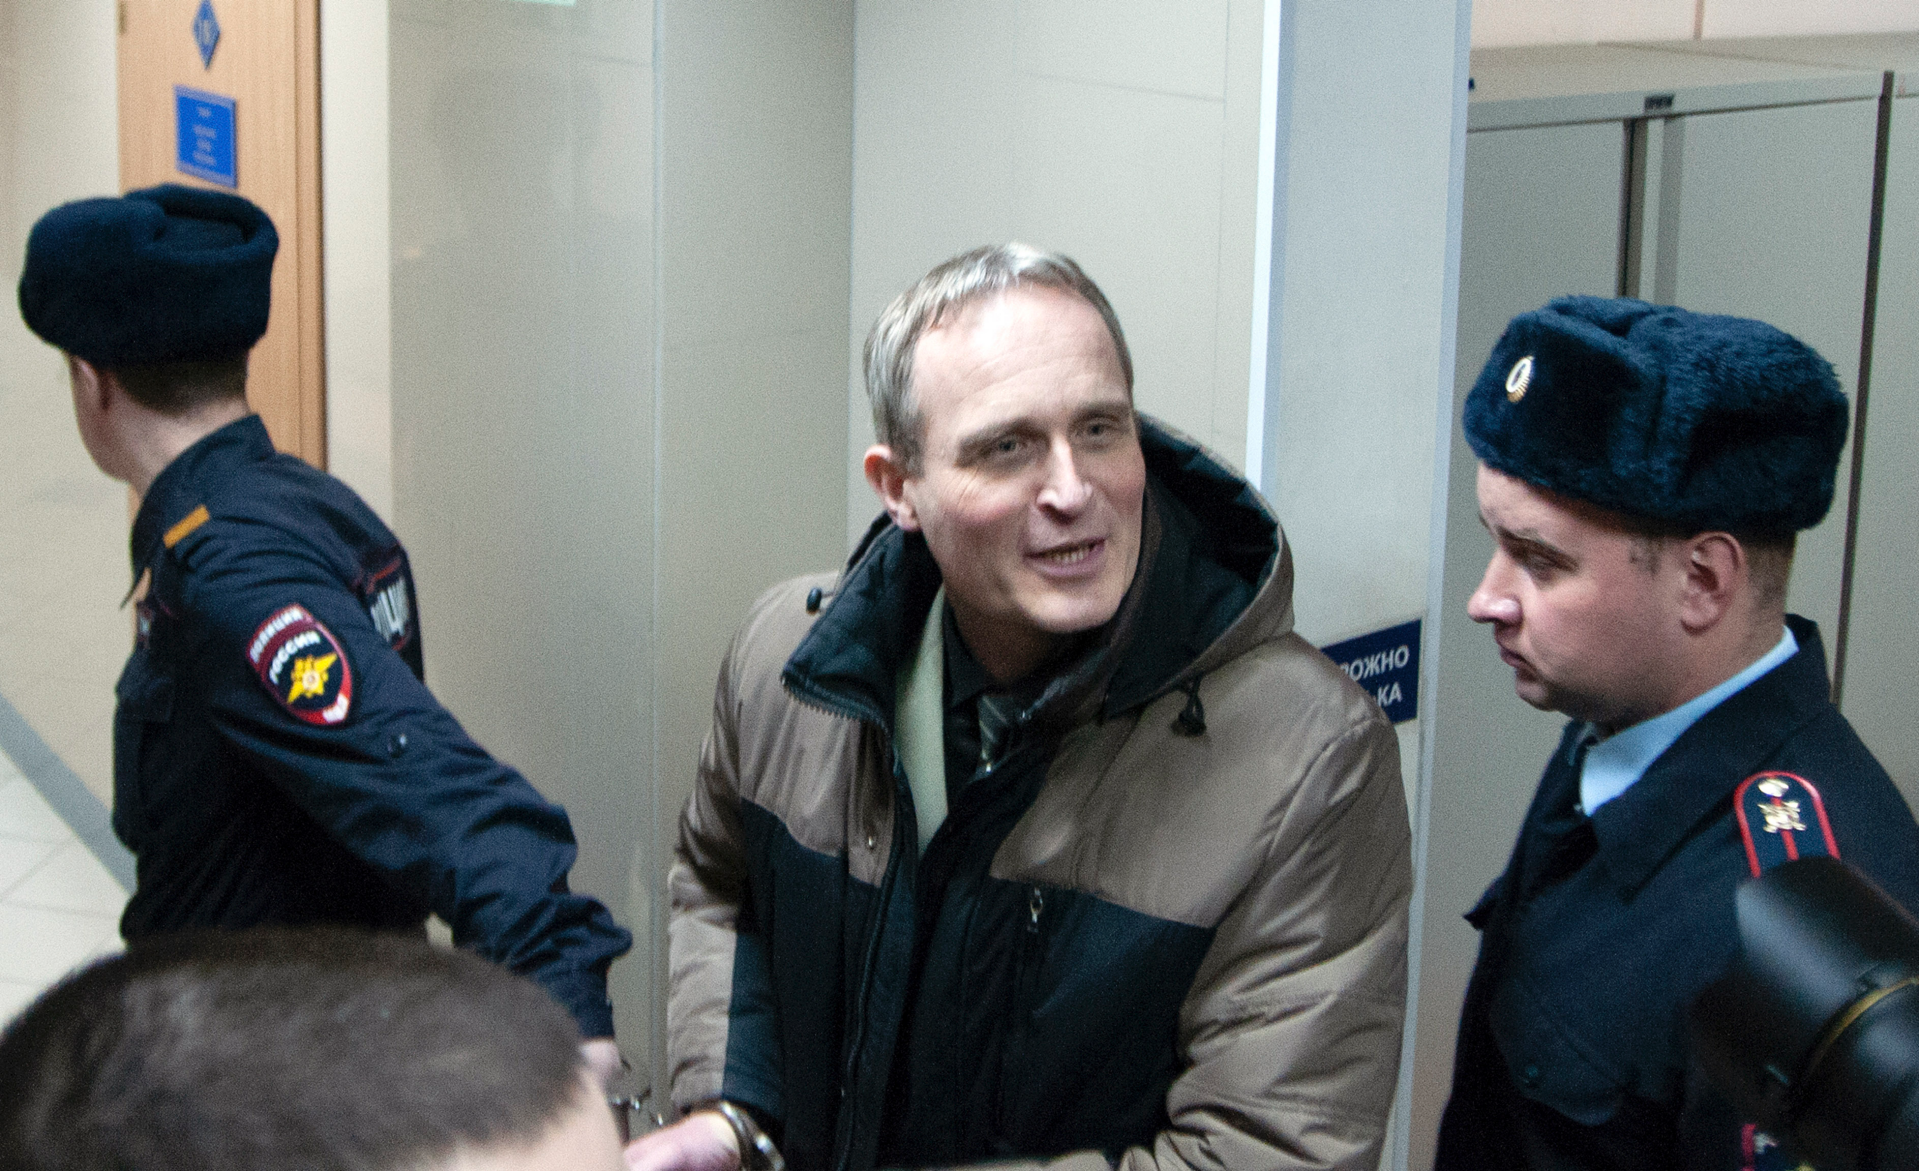 State Department hits Russia over jailing of Jehovah's Witnesses for 'peaceful religious practice'